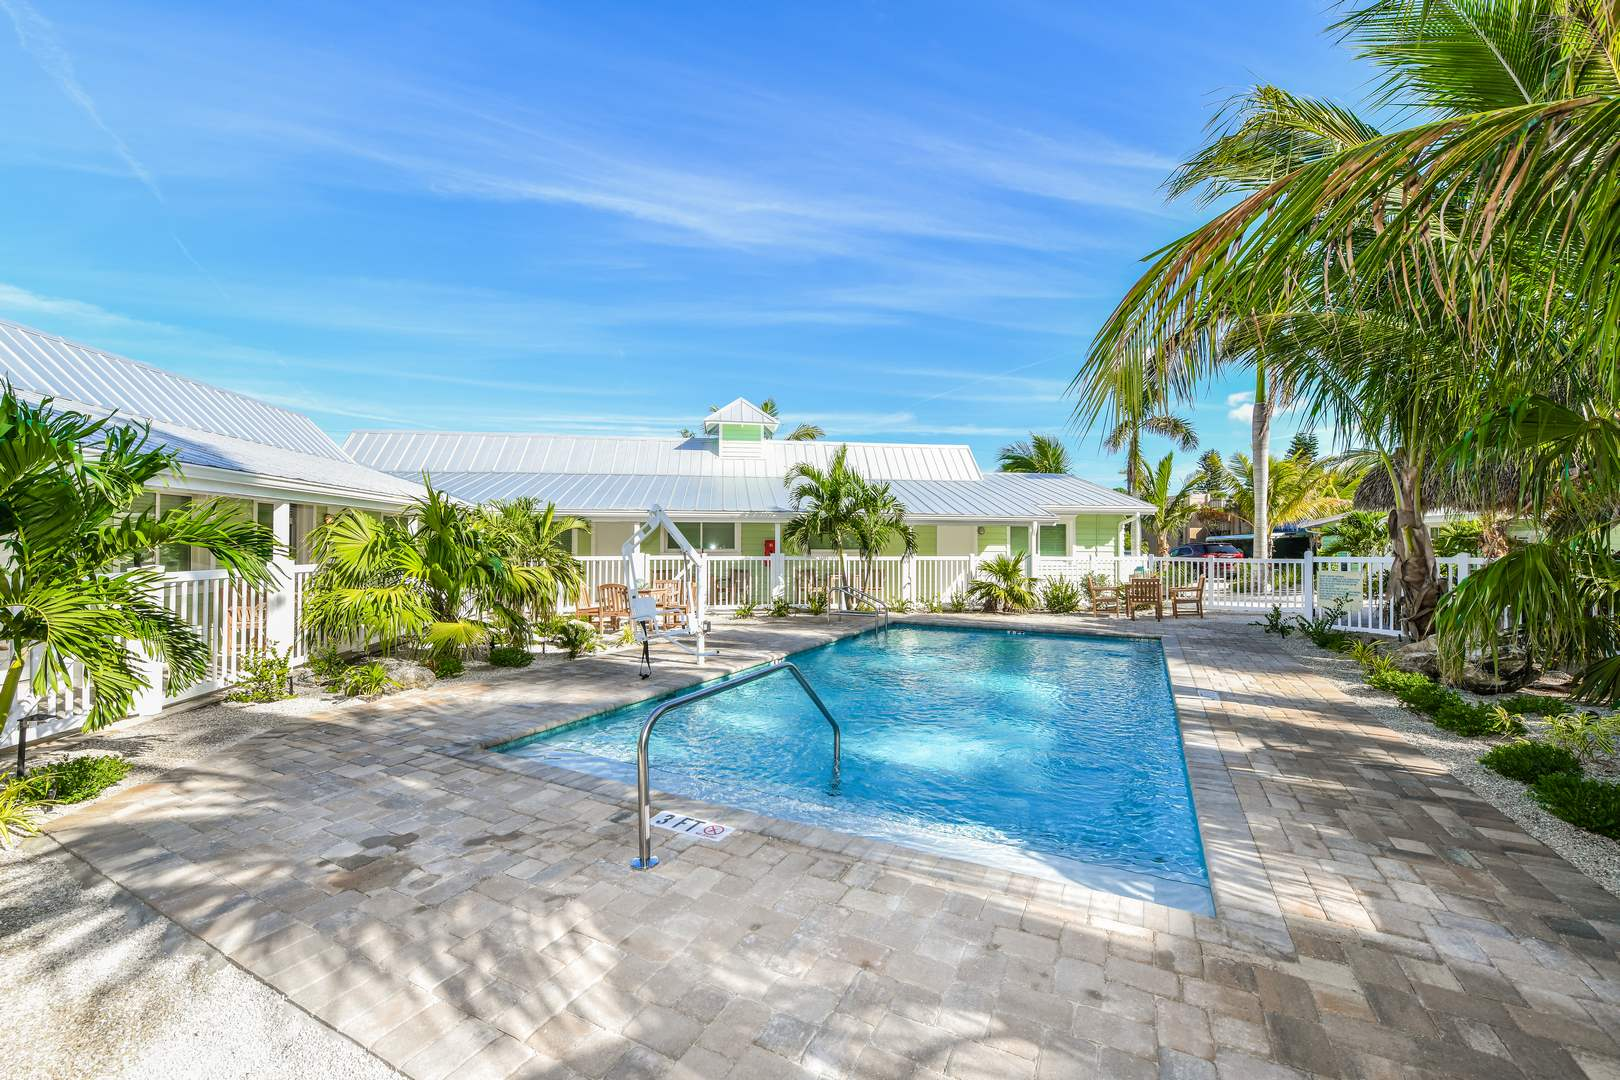 Pool - Located in the 30s Area - 1 block to the beach